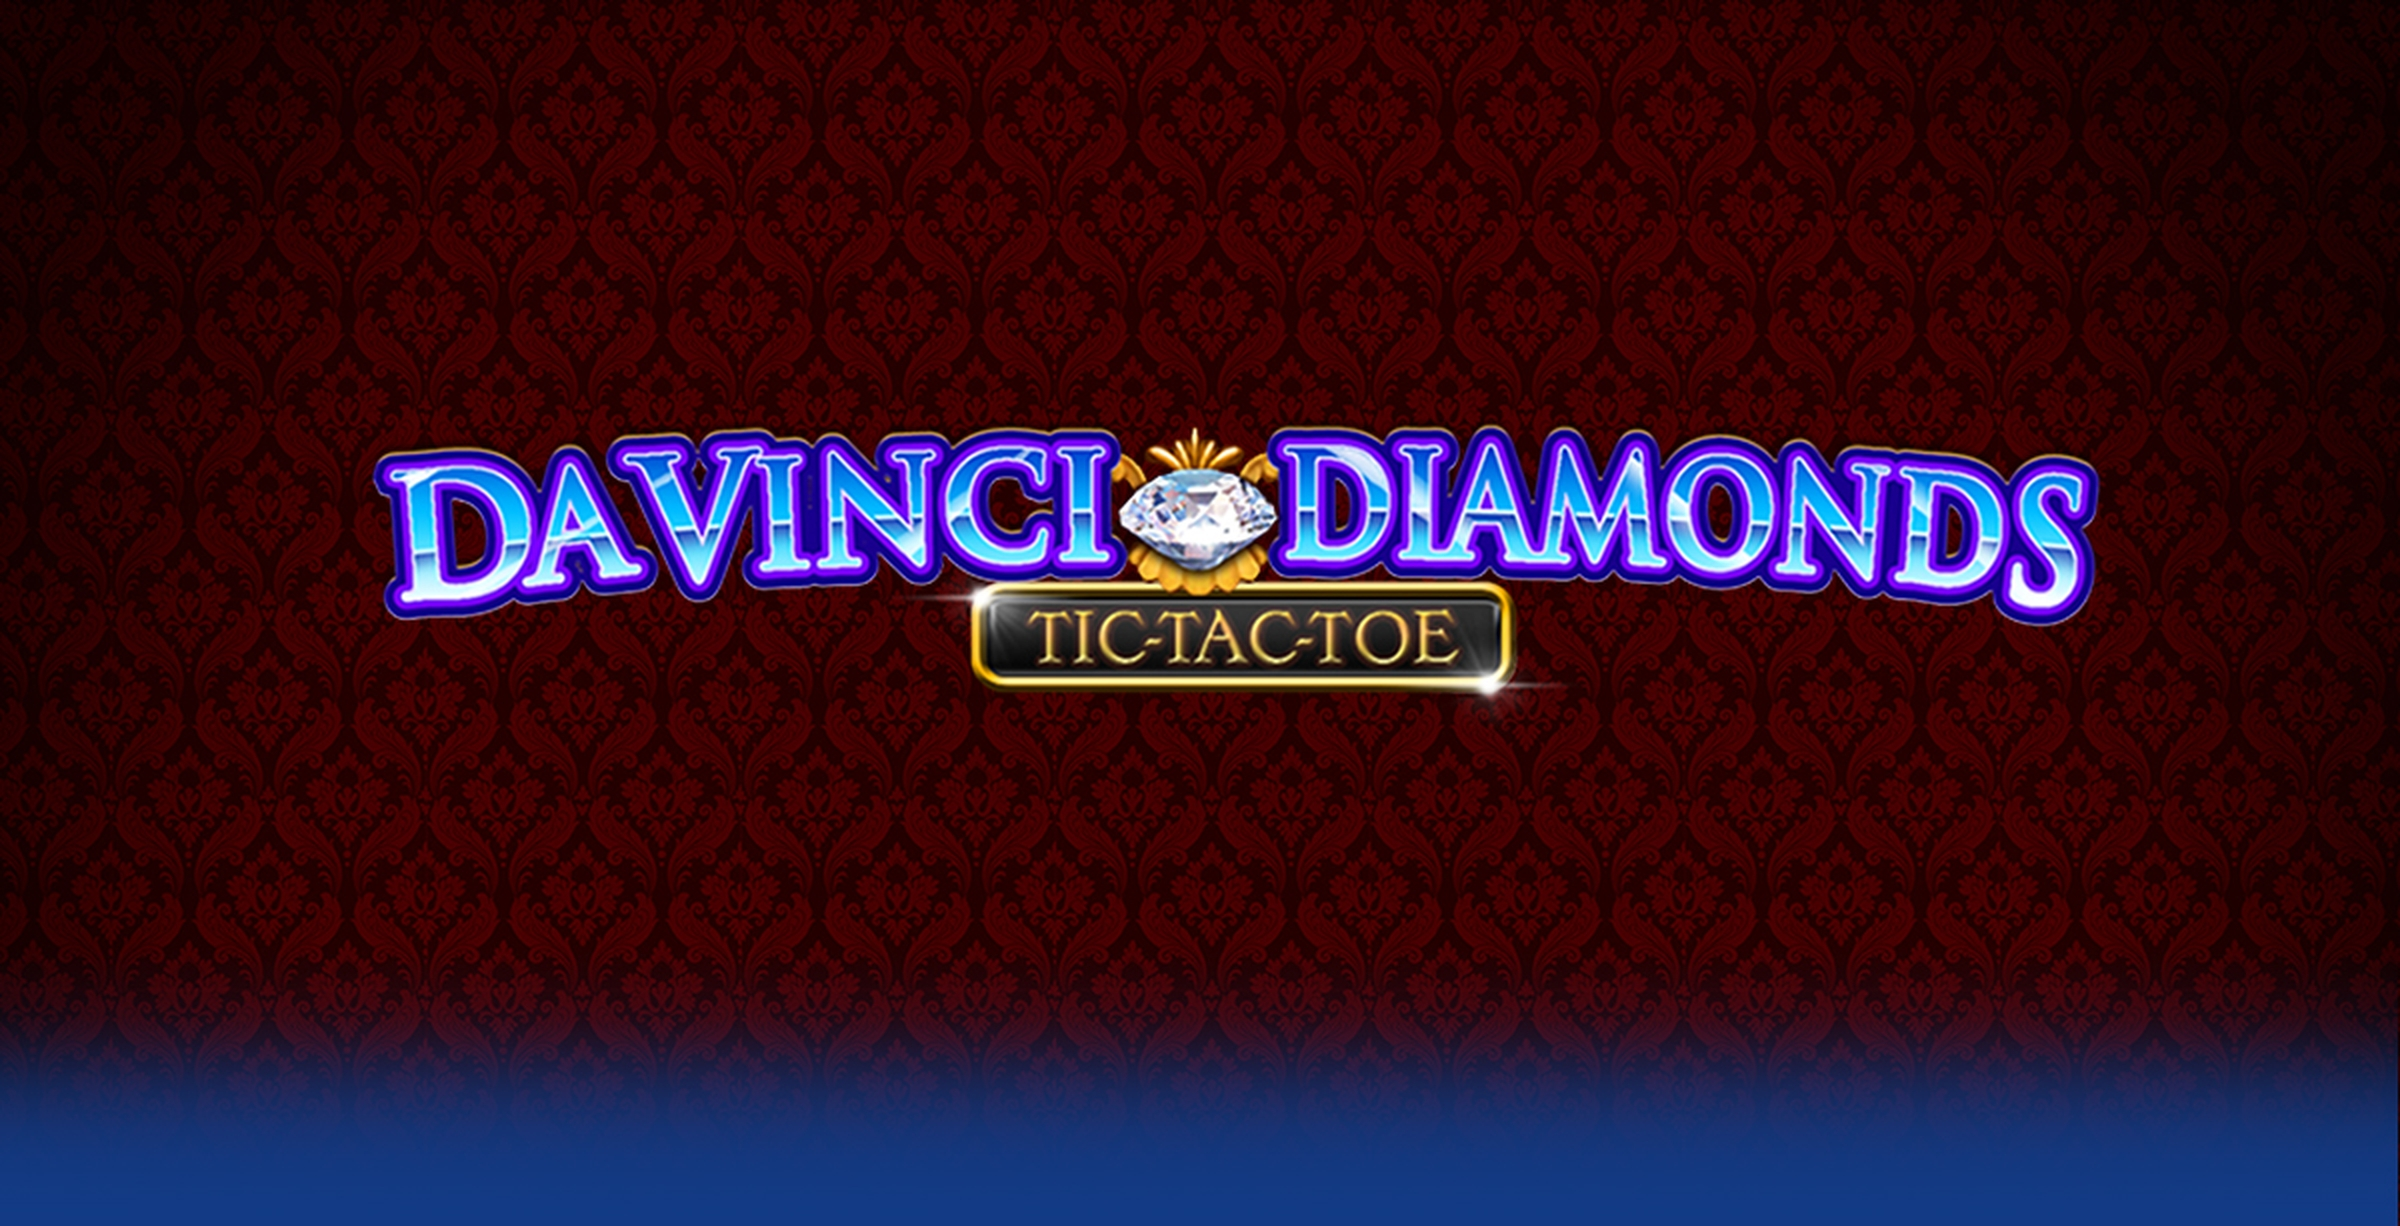 The Da Vinci Diamonds Tic Tac Toe Online Slot Demo Game by IGT